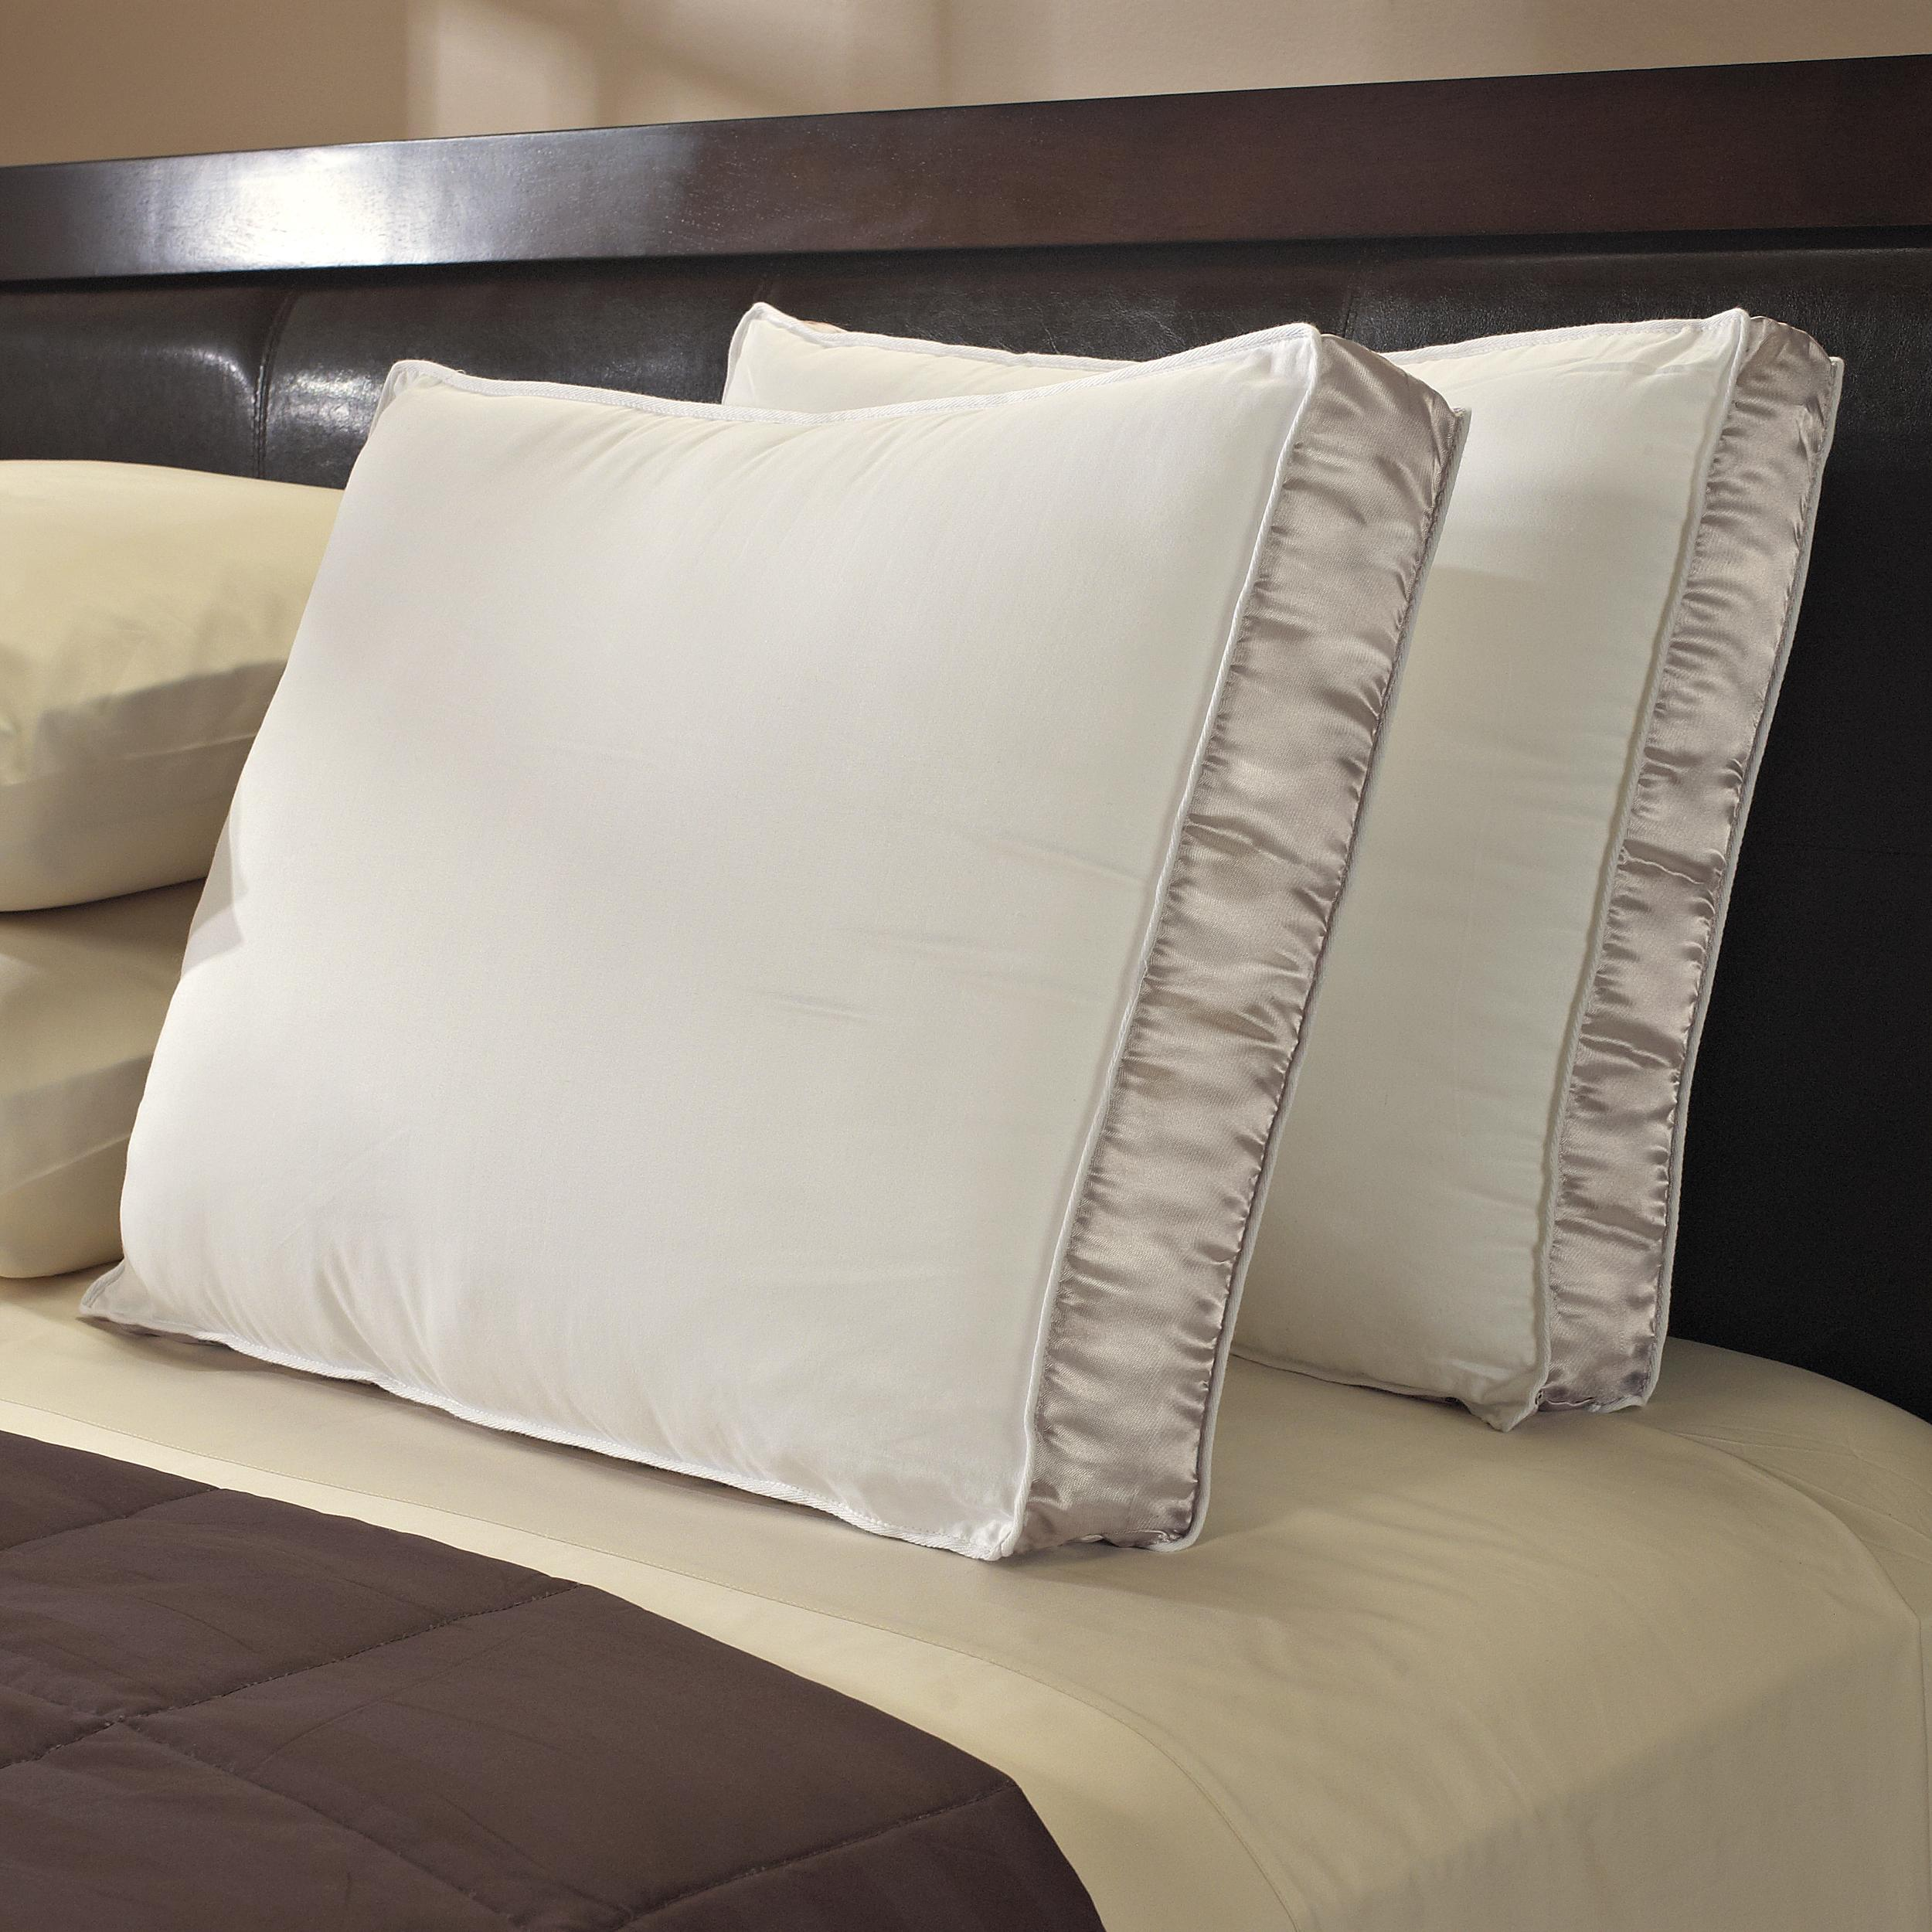 Famous Maker 330 Thread Count Gusseted Down Alternative Pillows (Set of 2)